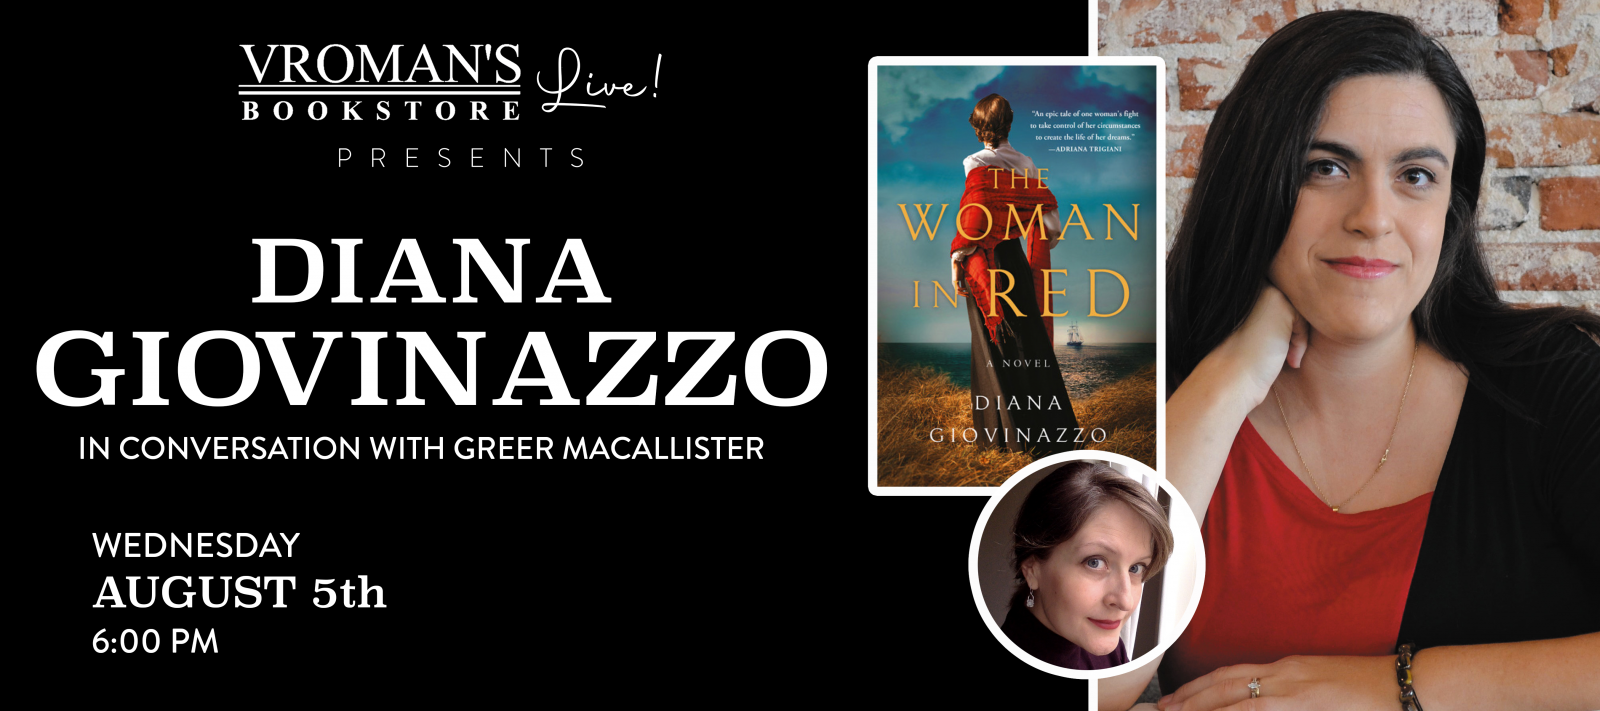 Vroman's Live present Diana Giovinazzo, in conversation with Greer MacAllister, on Wednesday August 5th at 6pm